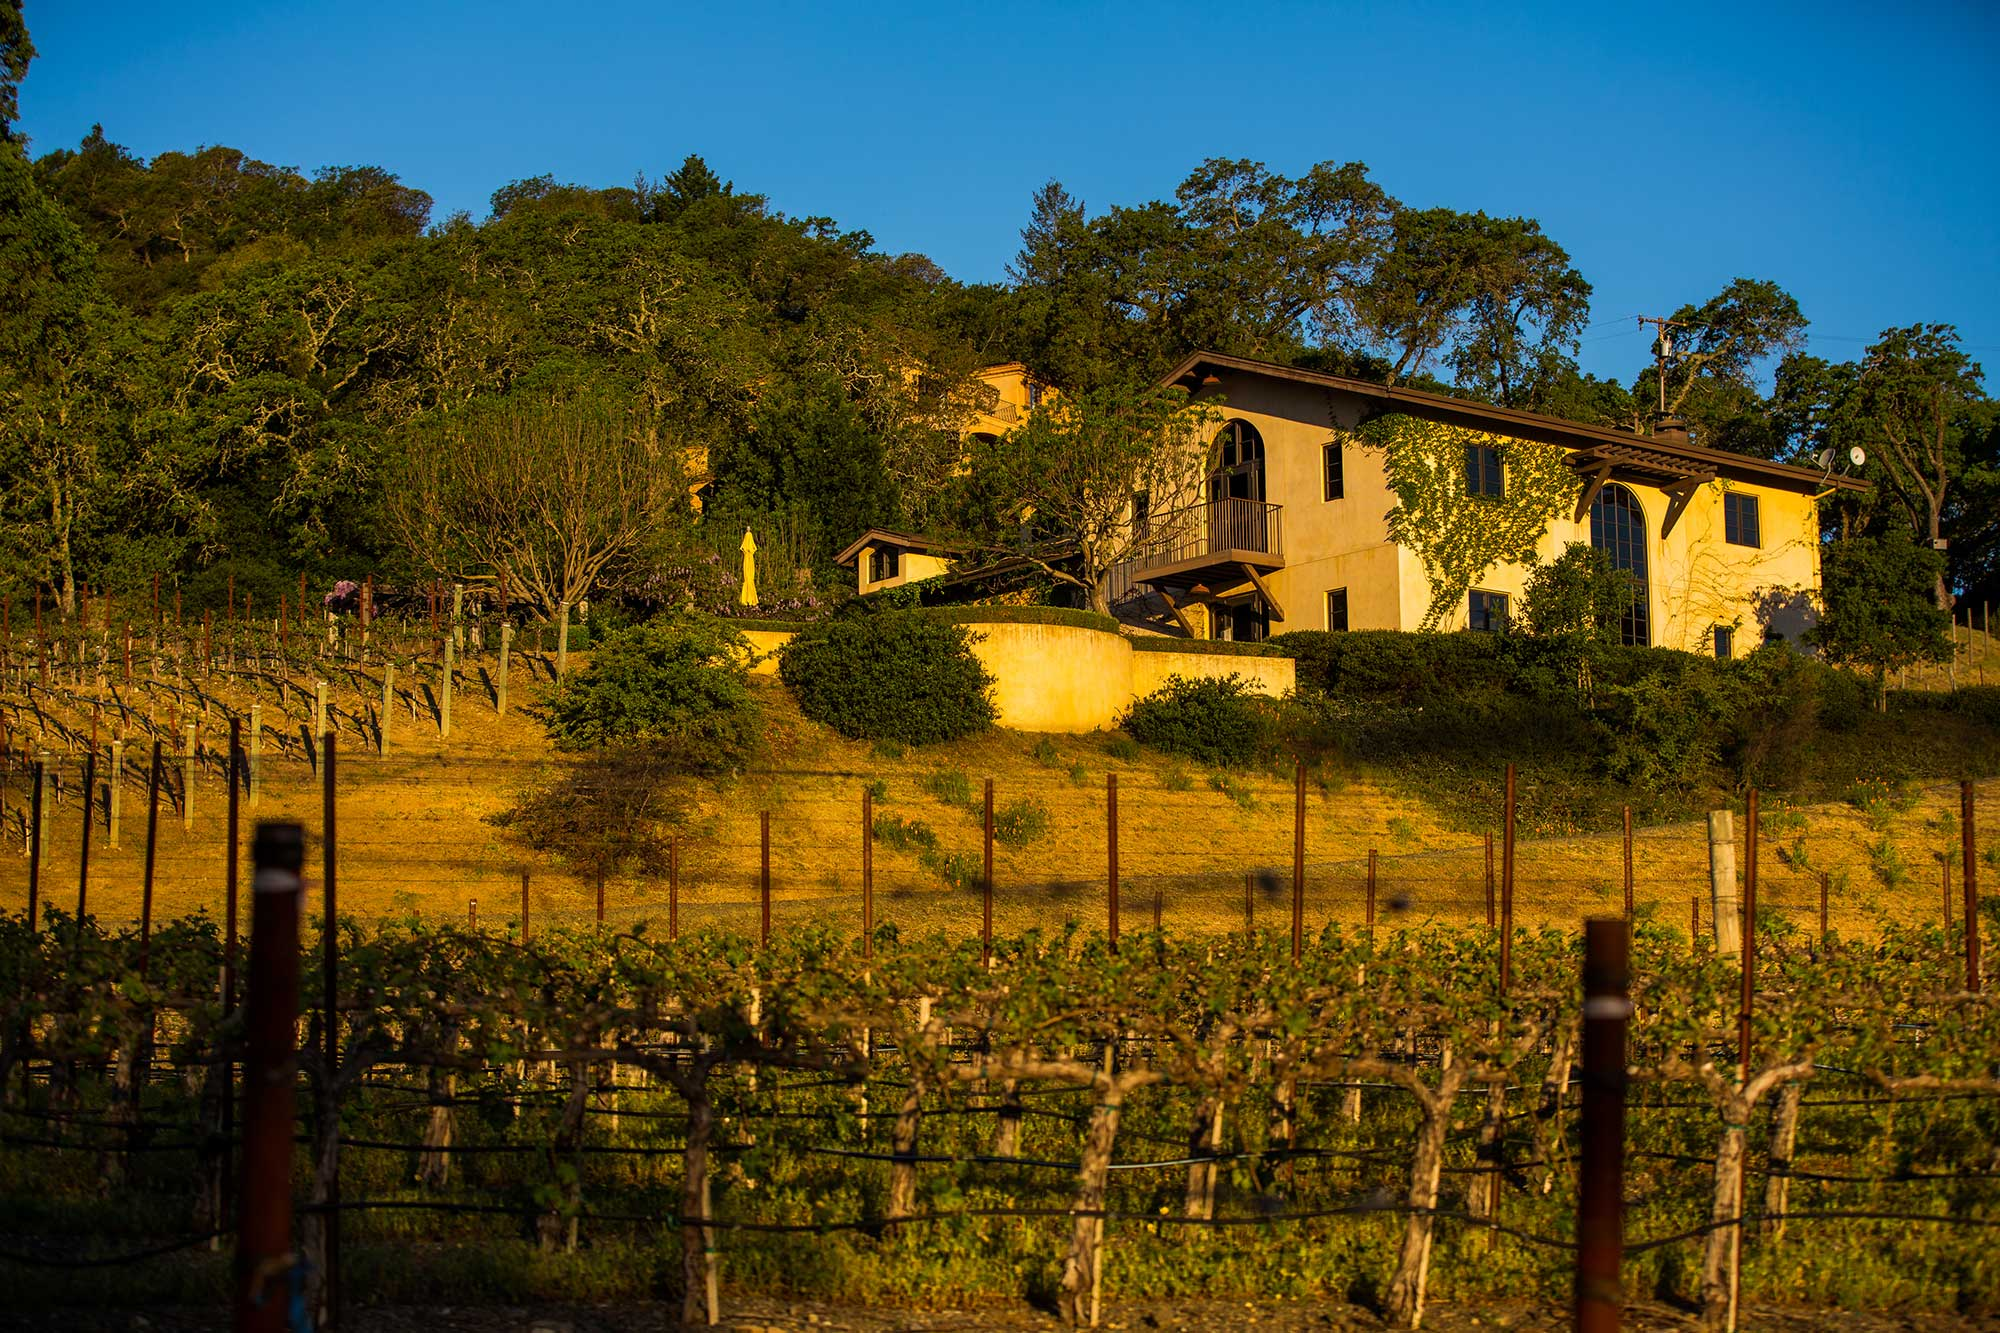 The Winery at Keever Vineyards in Yountville, California